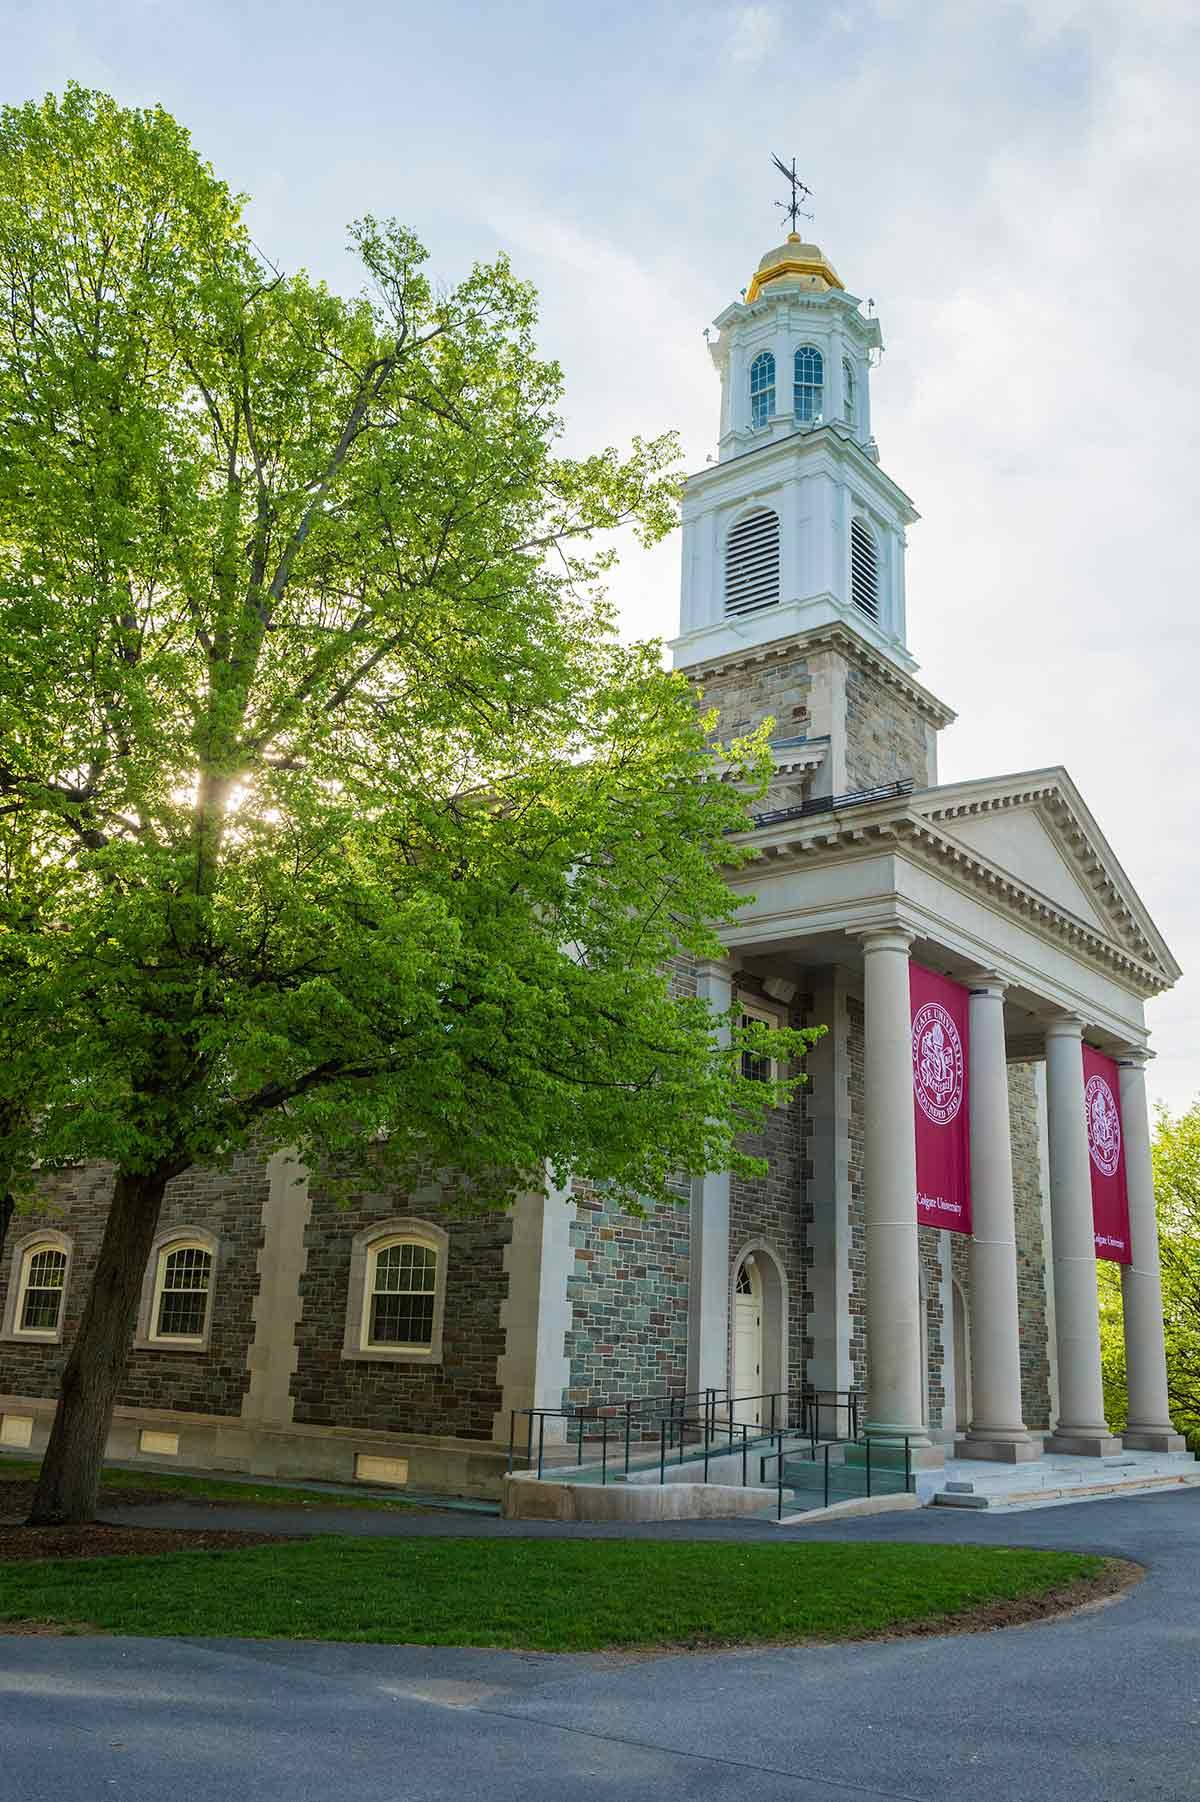 Alumni Memorial Chapel with Bicentennial banners in spring.